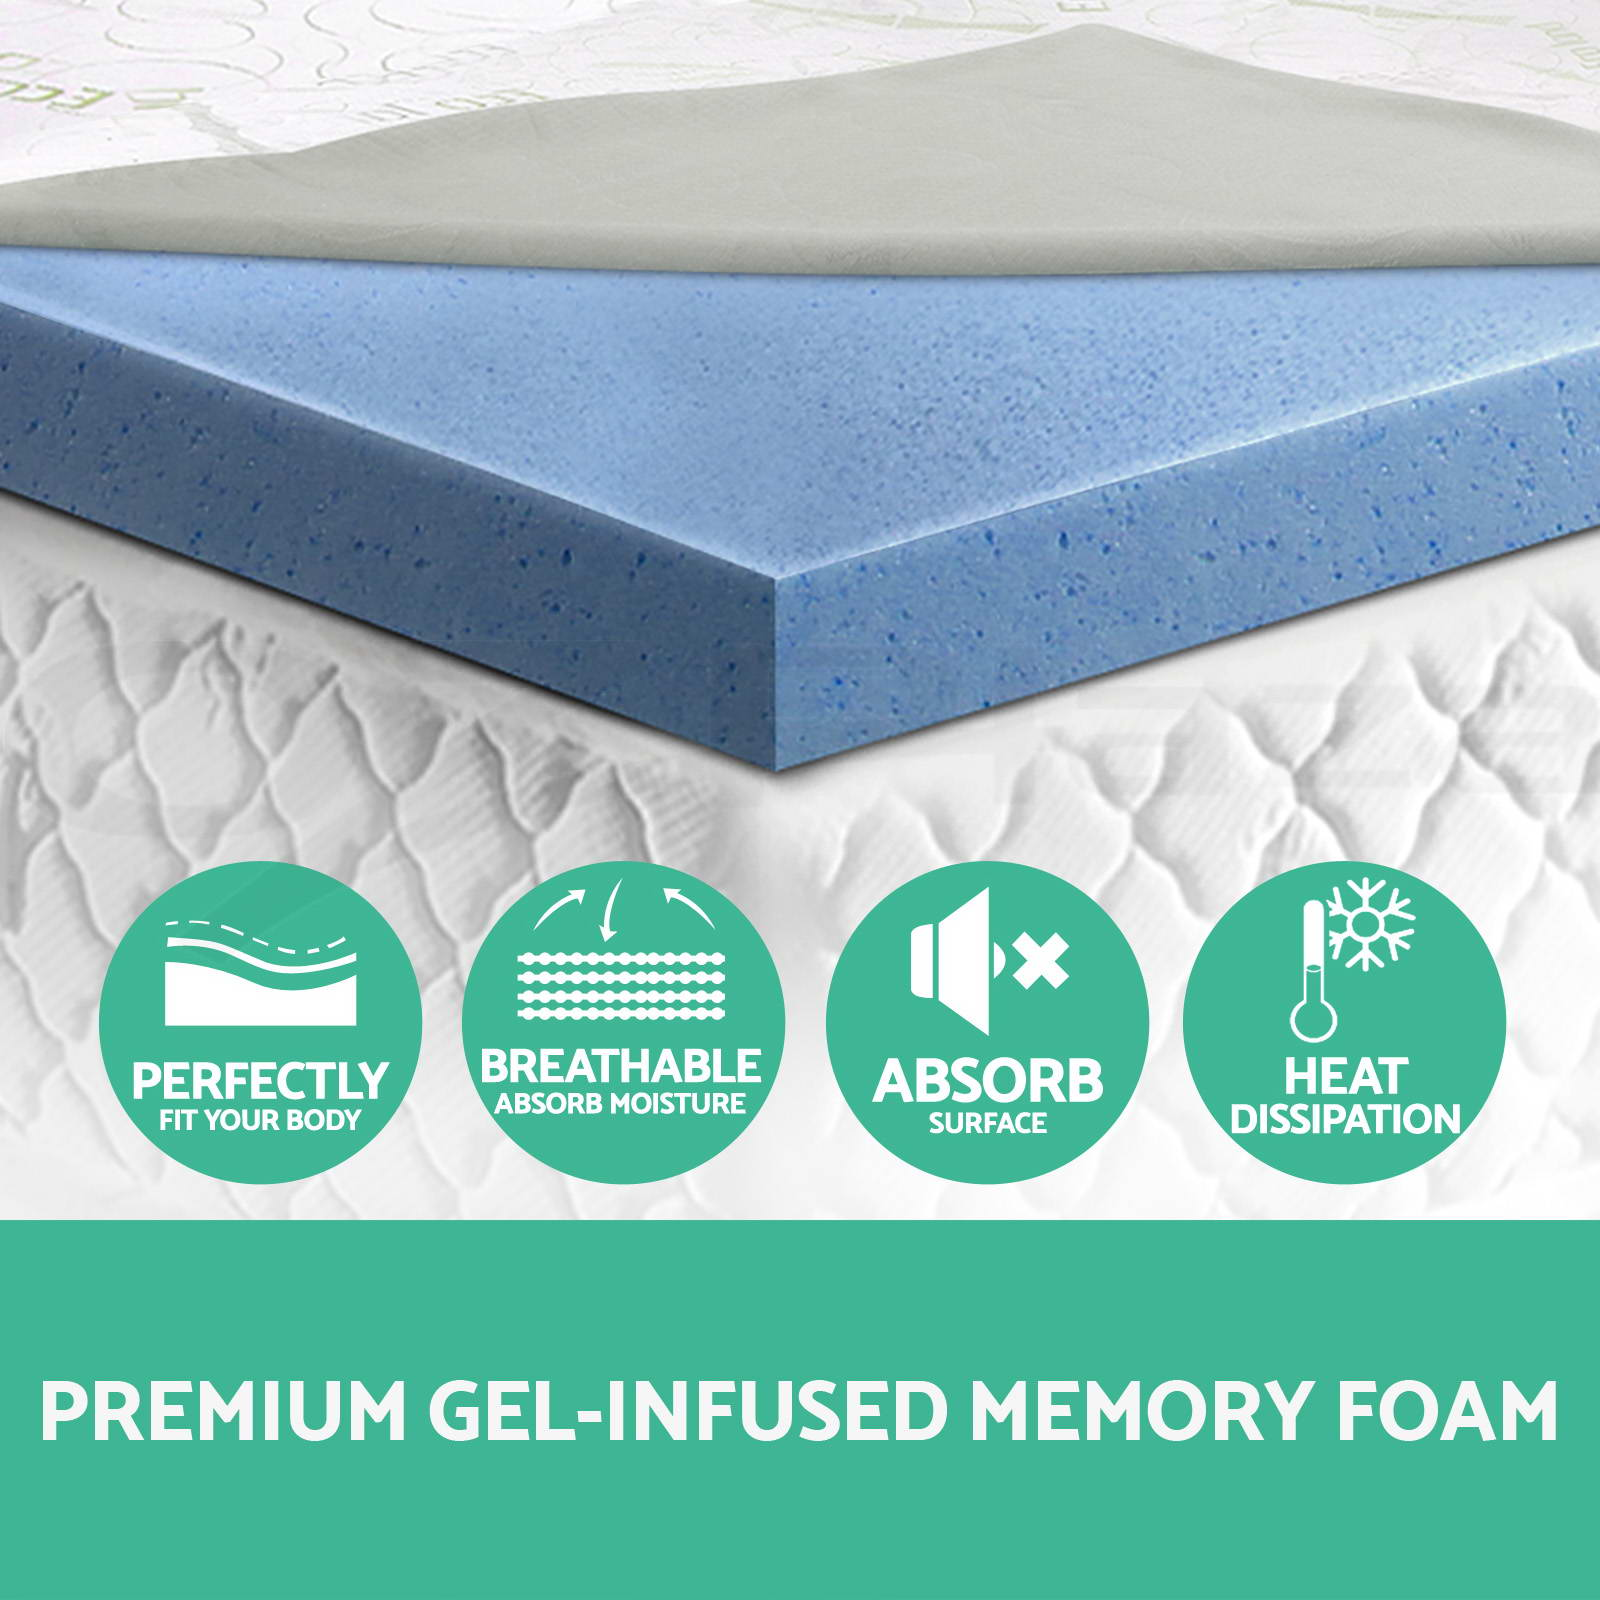 COOL GEL Memory Foam Mattress Topper BAMBOO Fabric Cover